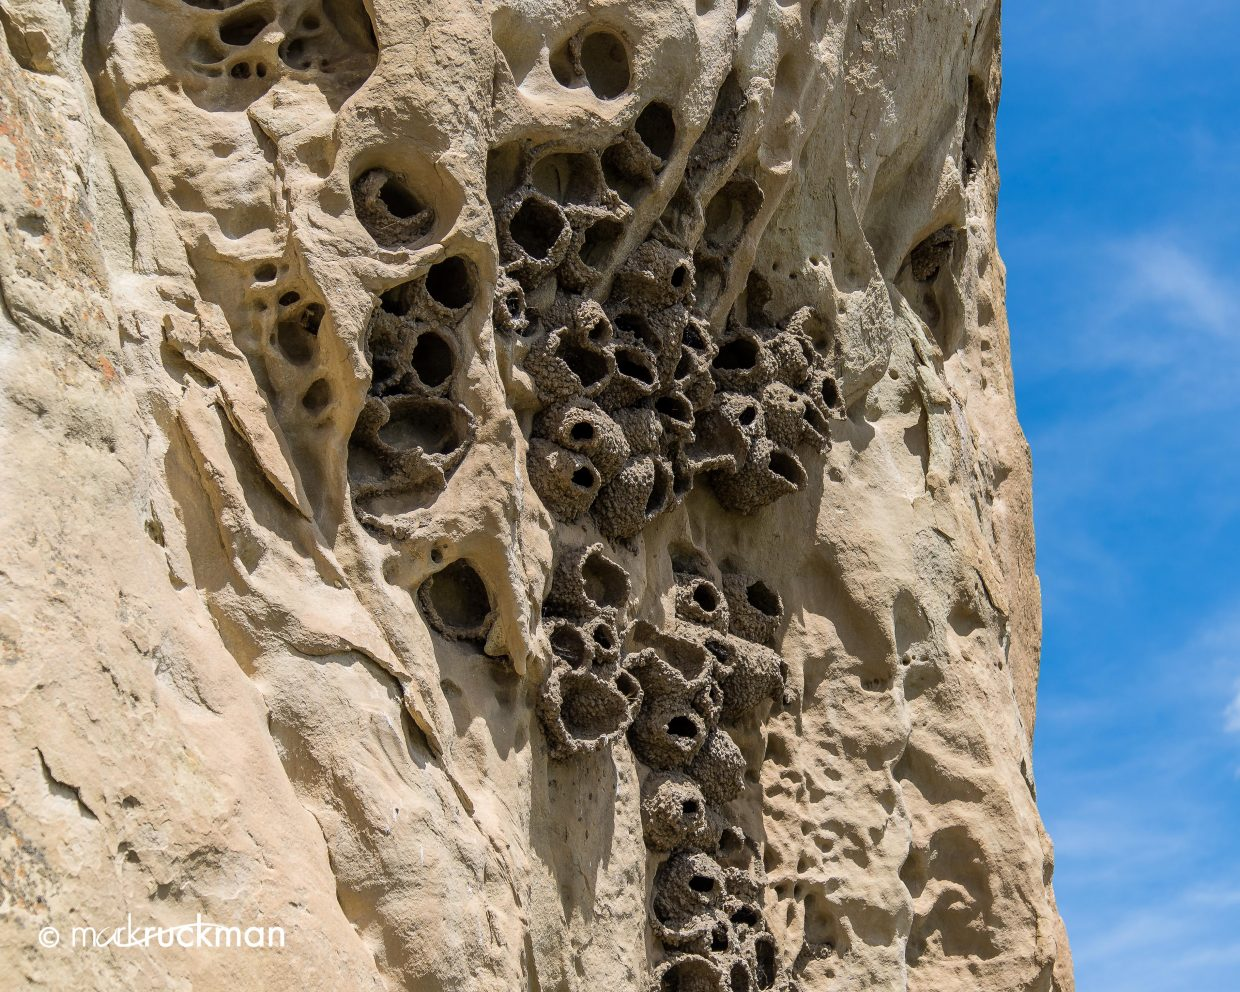 Cliff Swallow nest. Submitted by Mark Ruckman